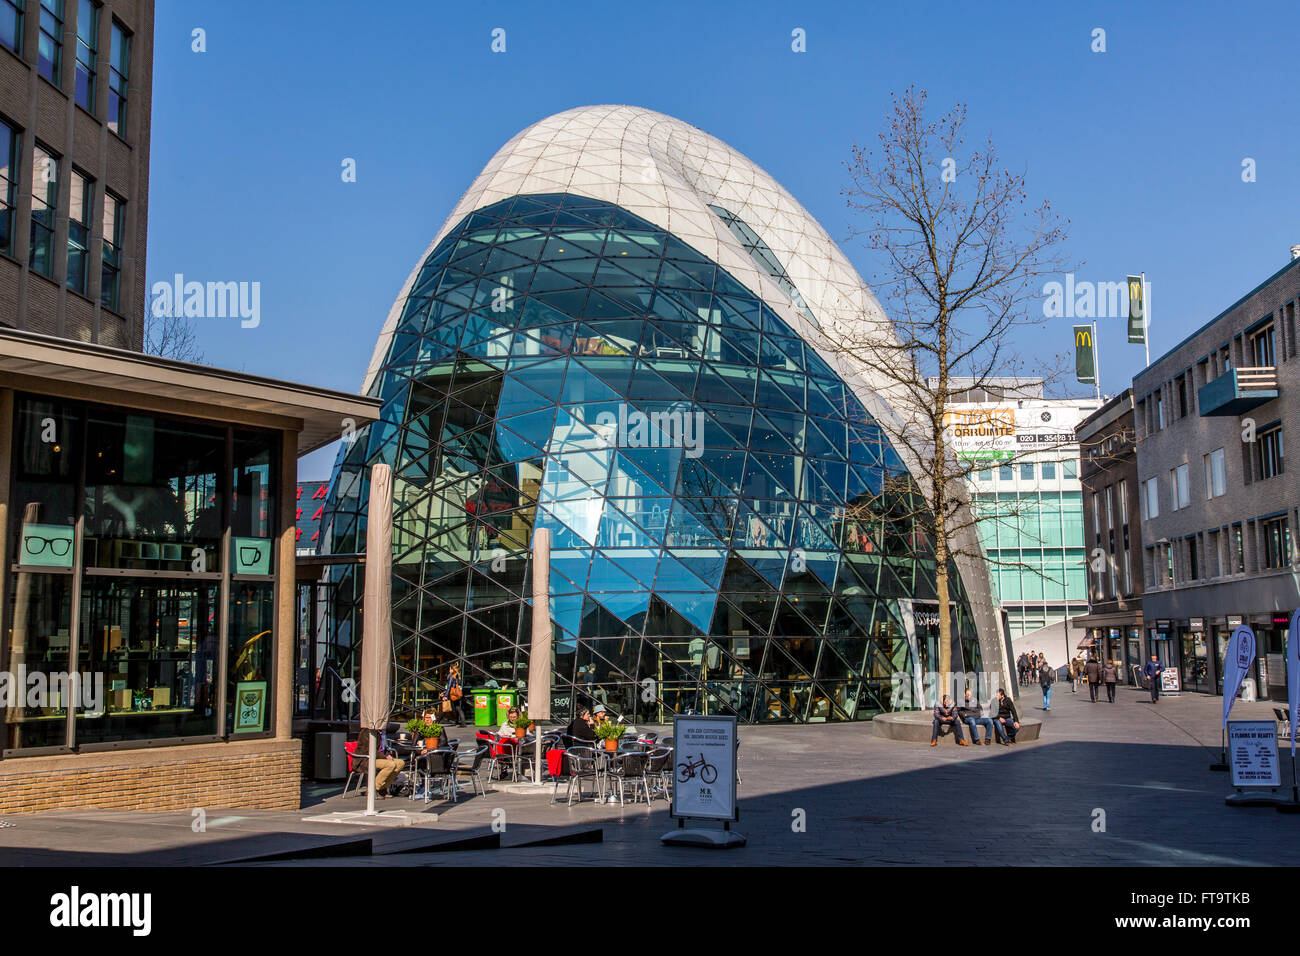 Commercial buildings with modern architecture, BLOB, Binary Large Object, in downtown Eindhoven, The etherlands, - Stock Image